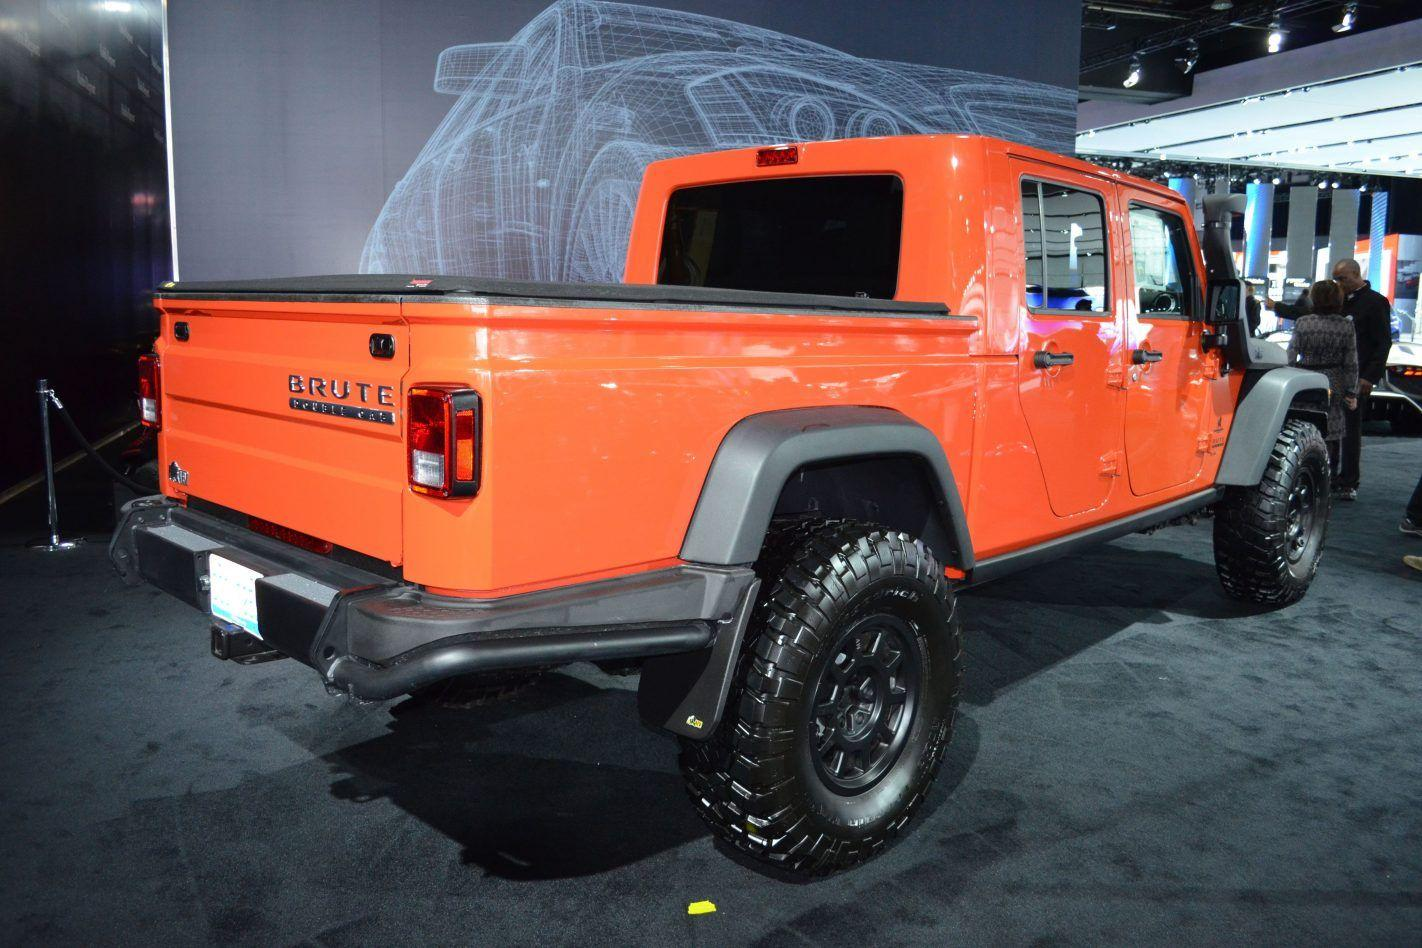 2019 Jeep Gladiator Exterior High Resolution Wallpapers | Auto Car ...